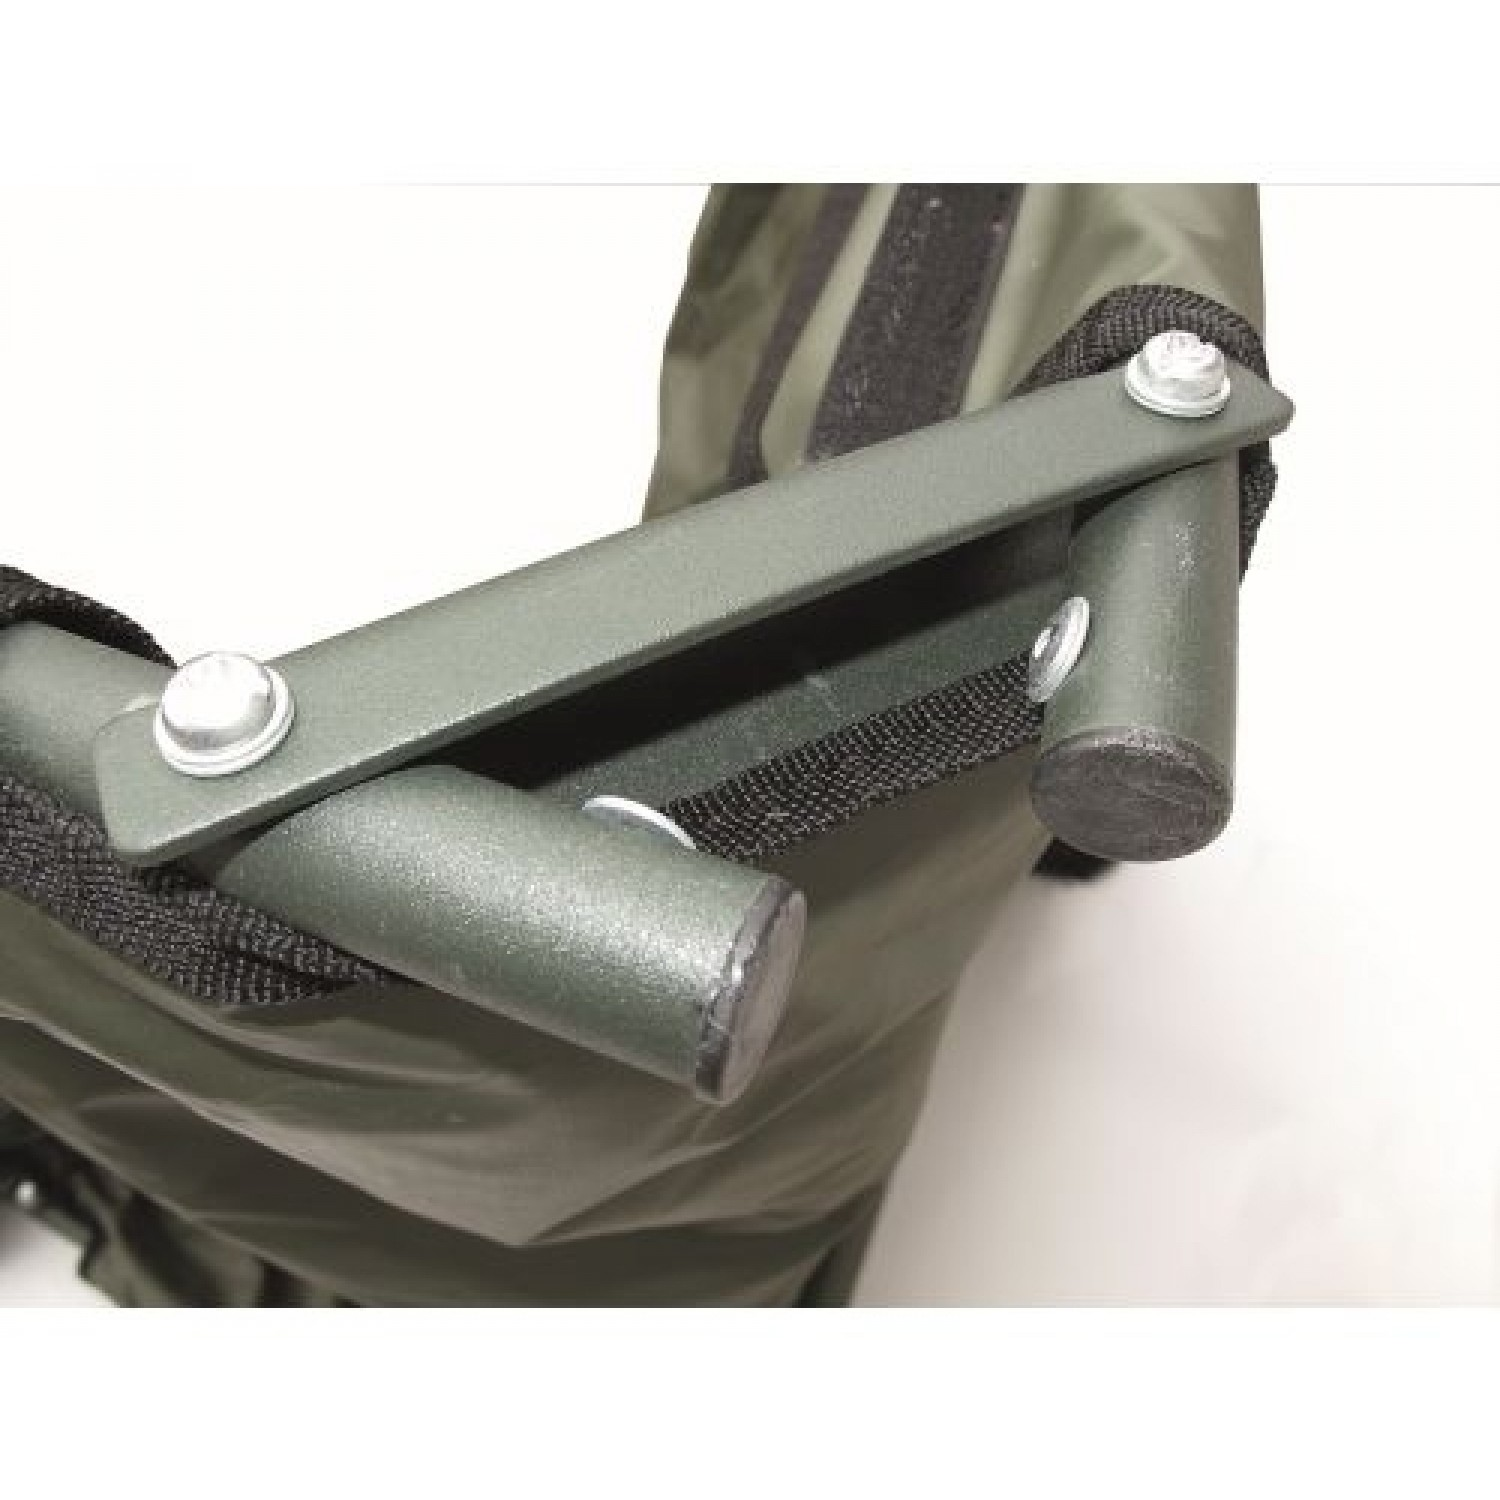 Jenzi Ground Contact Ultra Carp Cradle Deluxe